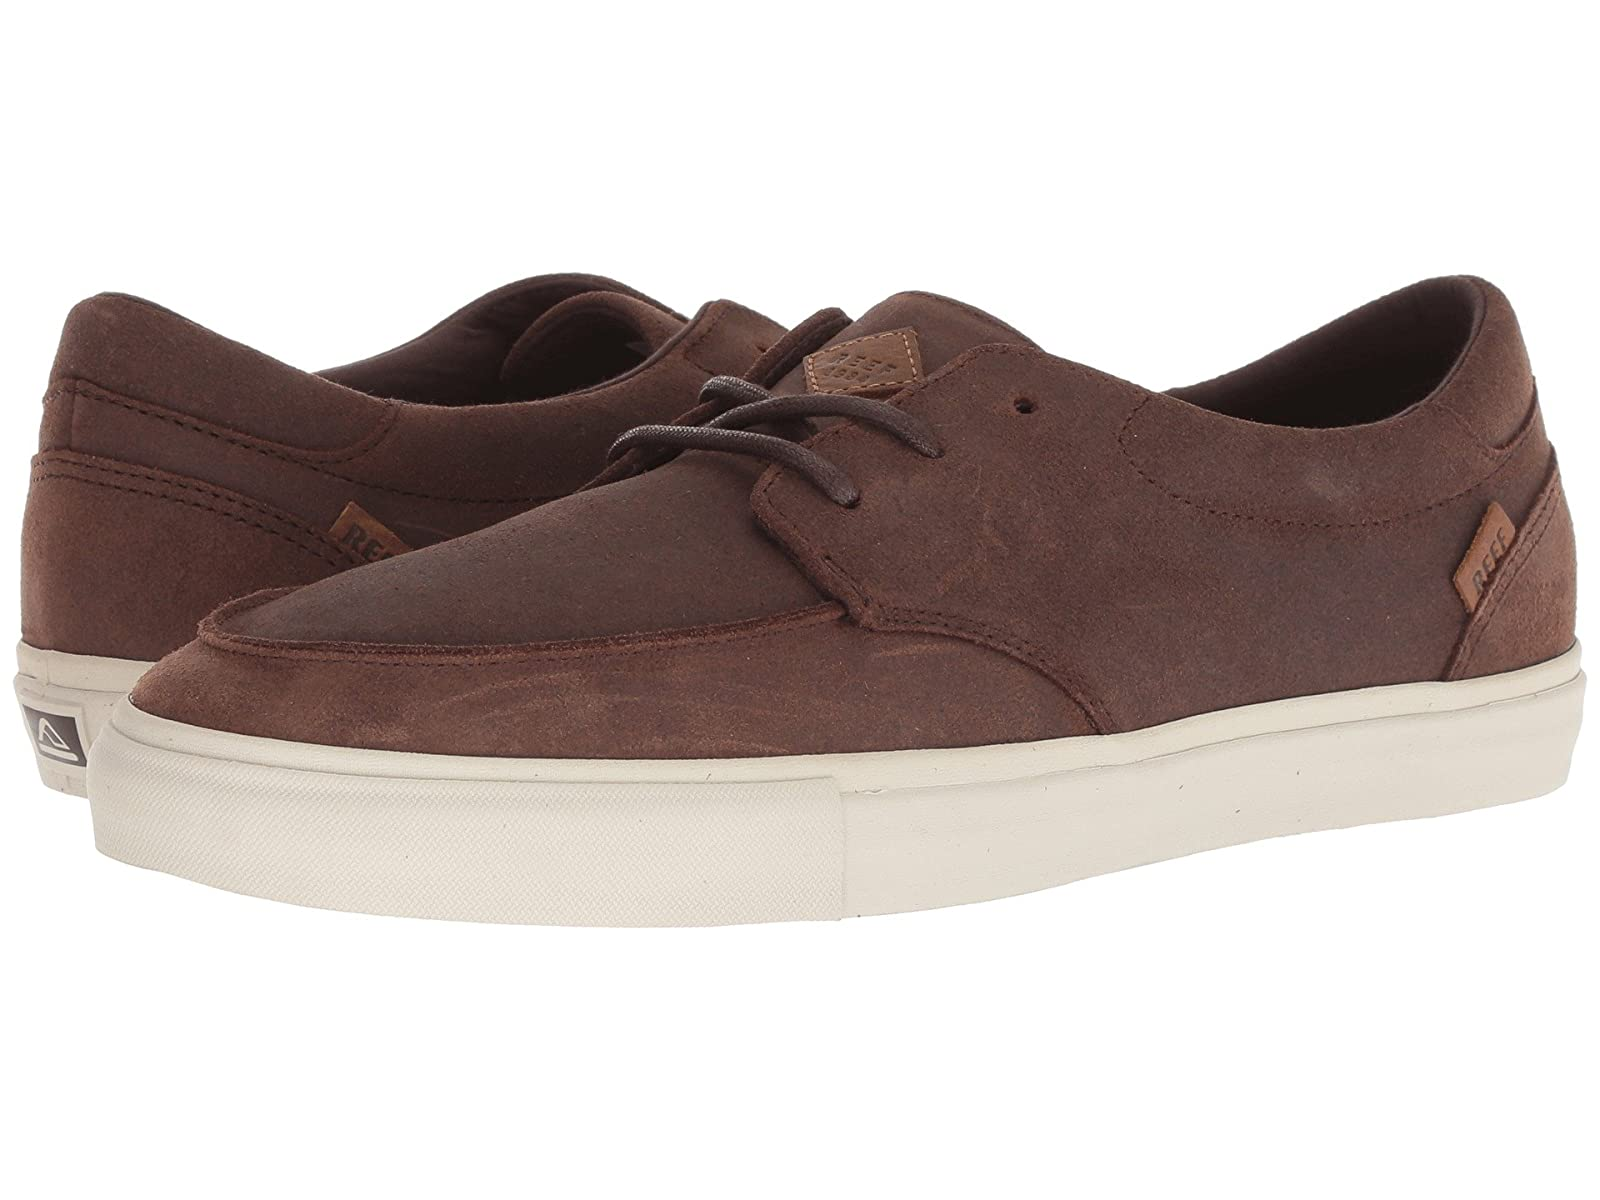 Reef Deckhand 3 LESelling fashionable and eye-catching shoes